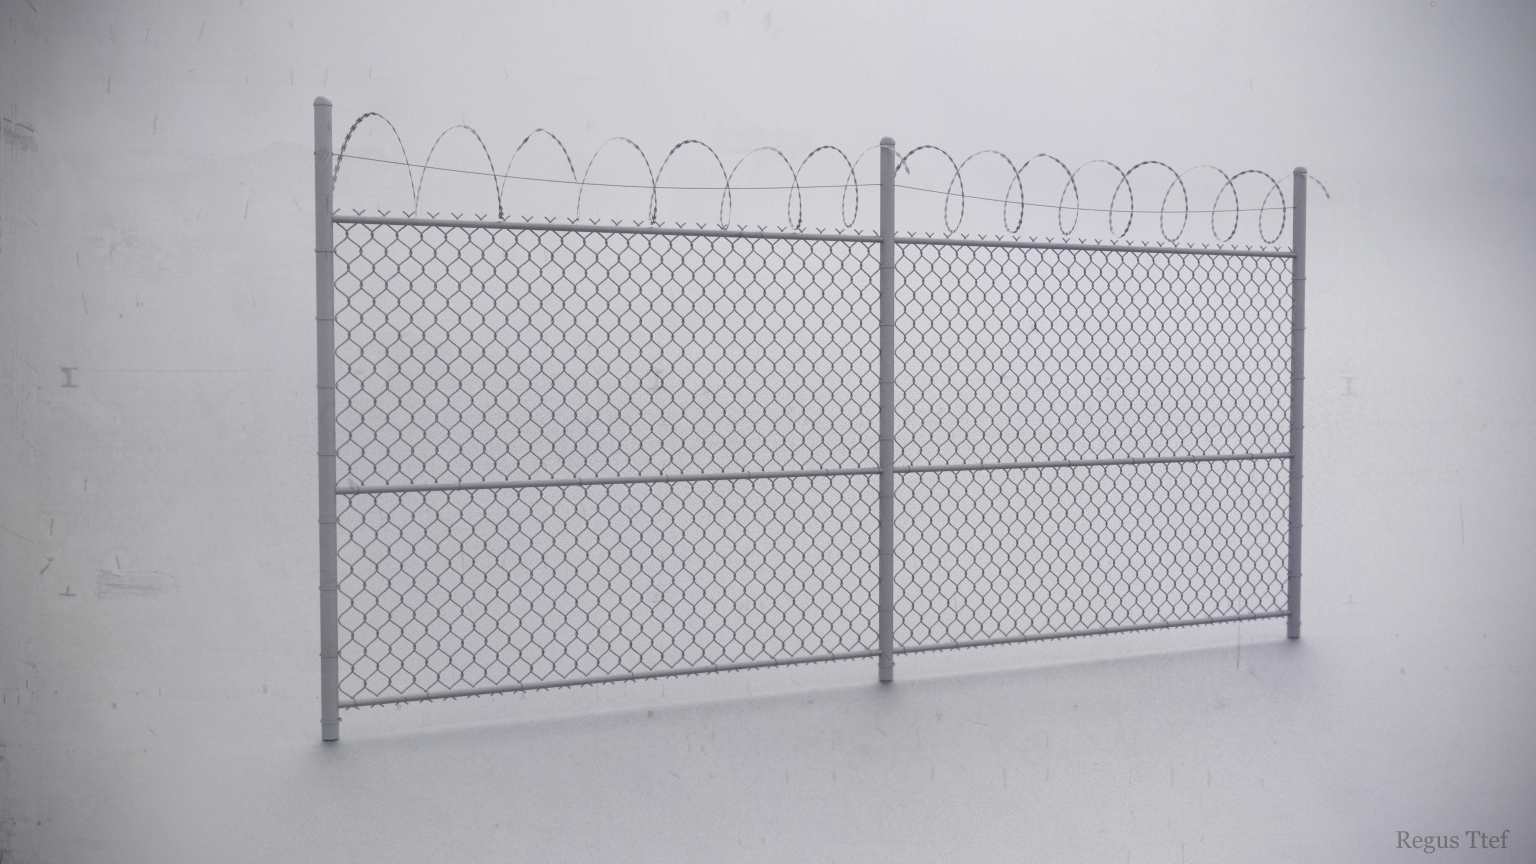 Barbed Wire Fence Png. Barbed Wire Fence Png R - Mathszone.co